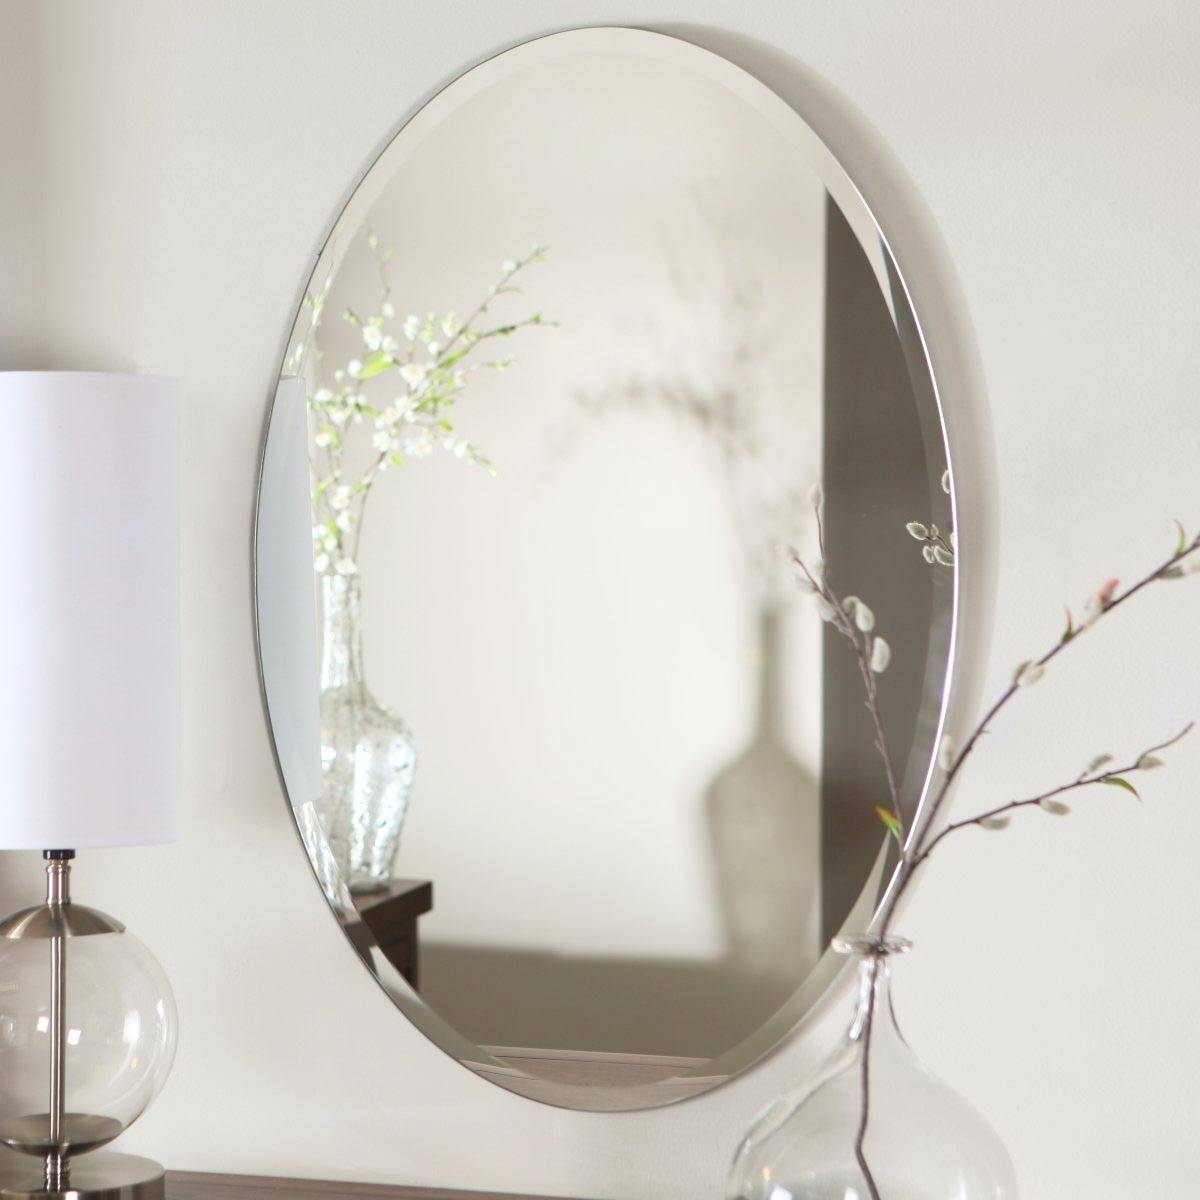 25 the best oval mirrors for walls large oval mirrors for bathroom walls home inside oval mirrors for walls image 12 amipublicfo Gallery